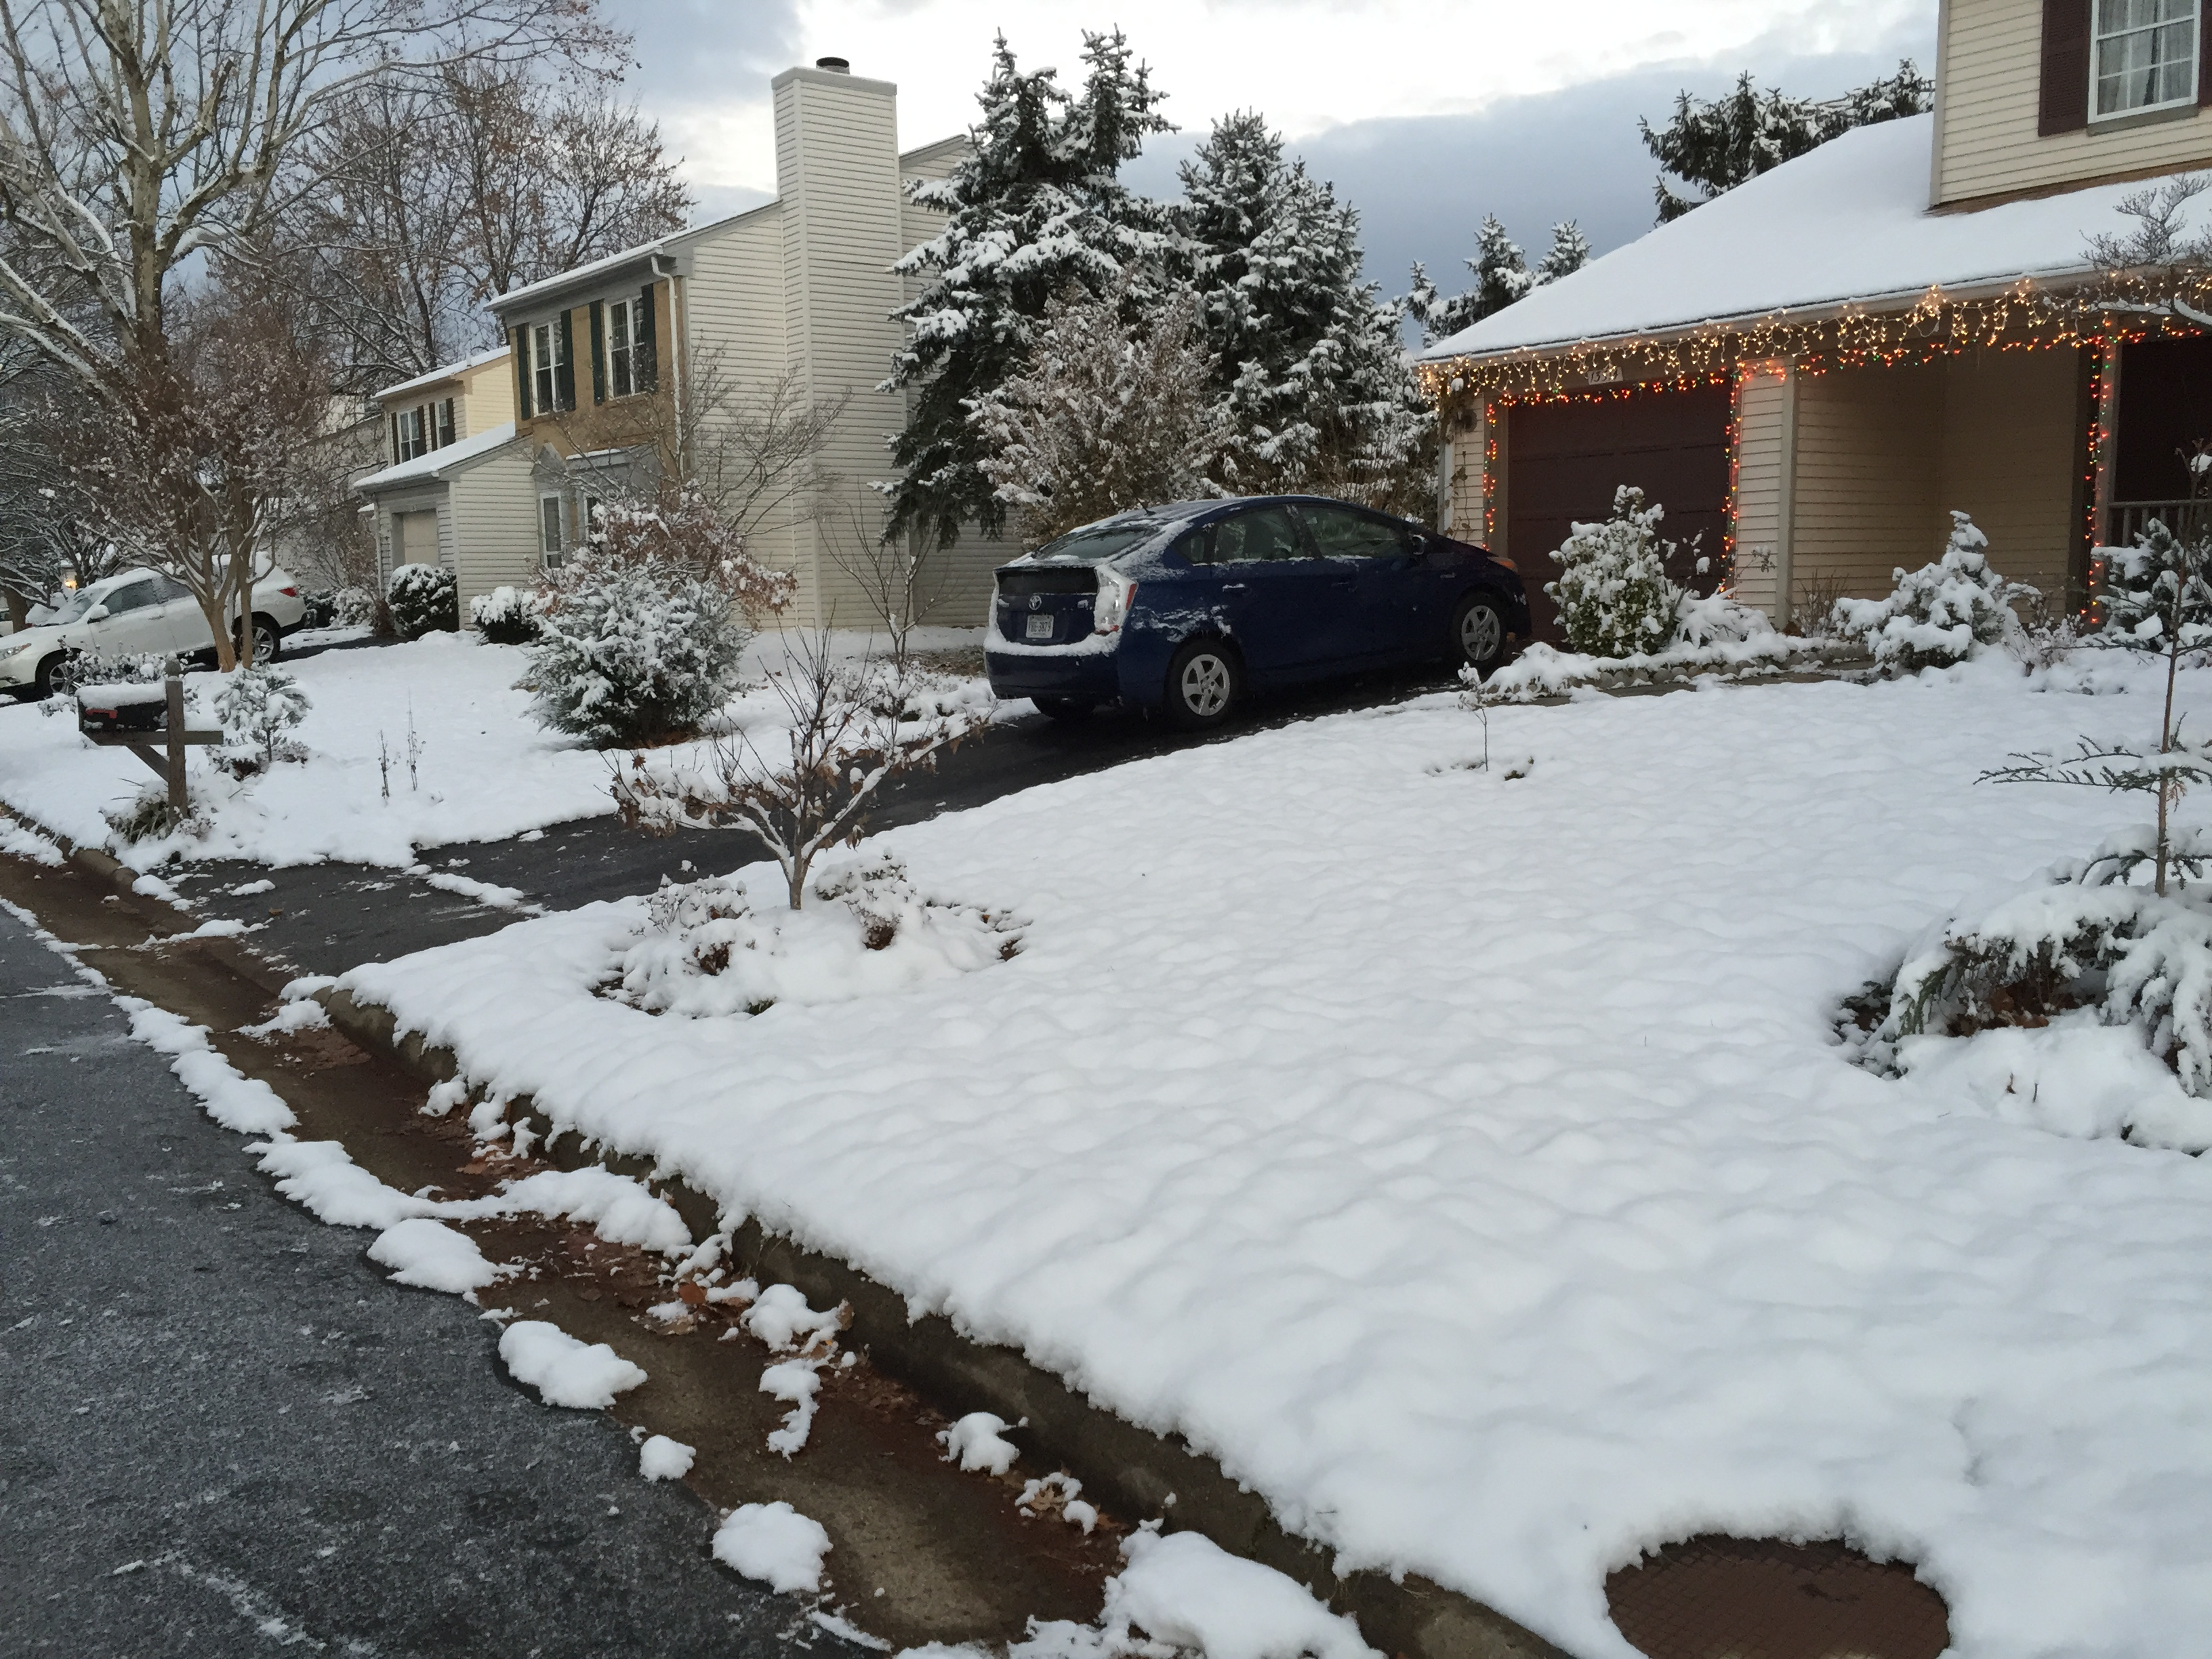 File:2017-12-10 07 17 06 A house with Christmas lights and snow ...